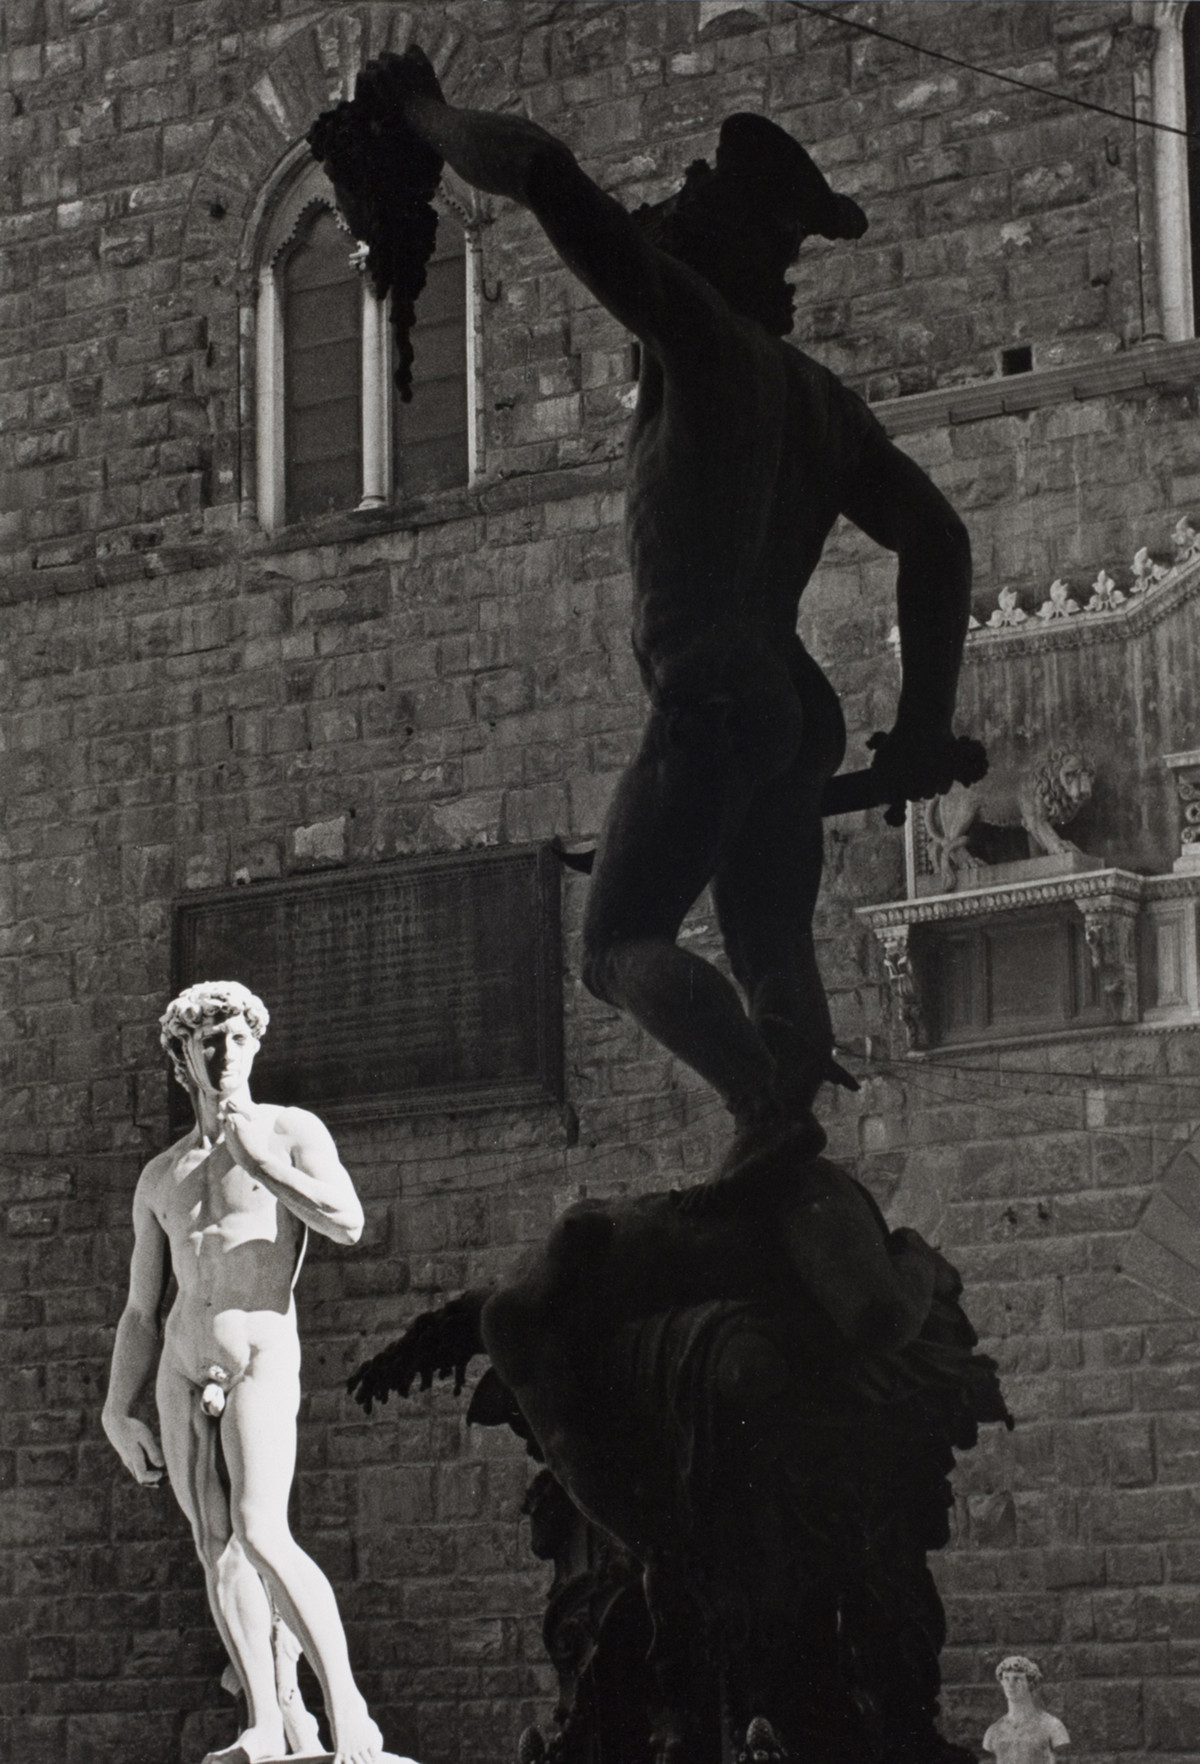 Perseus by the Italian sculptor Benvenuto Cellini holds the severed head of a jellyfish. Against the background, a copy of Michelangelo's David, Palazzo Vecchio, Florence, Italy, 1935.